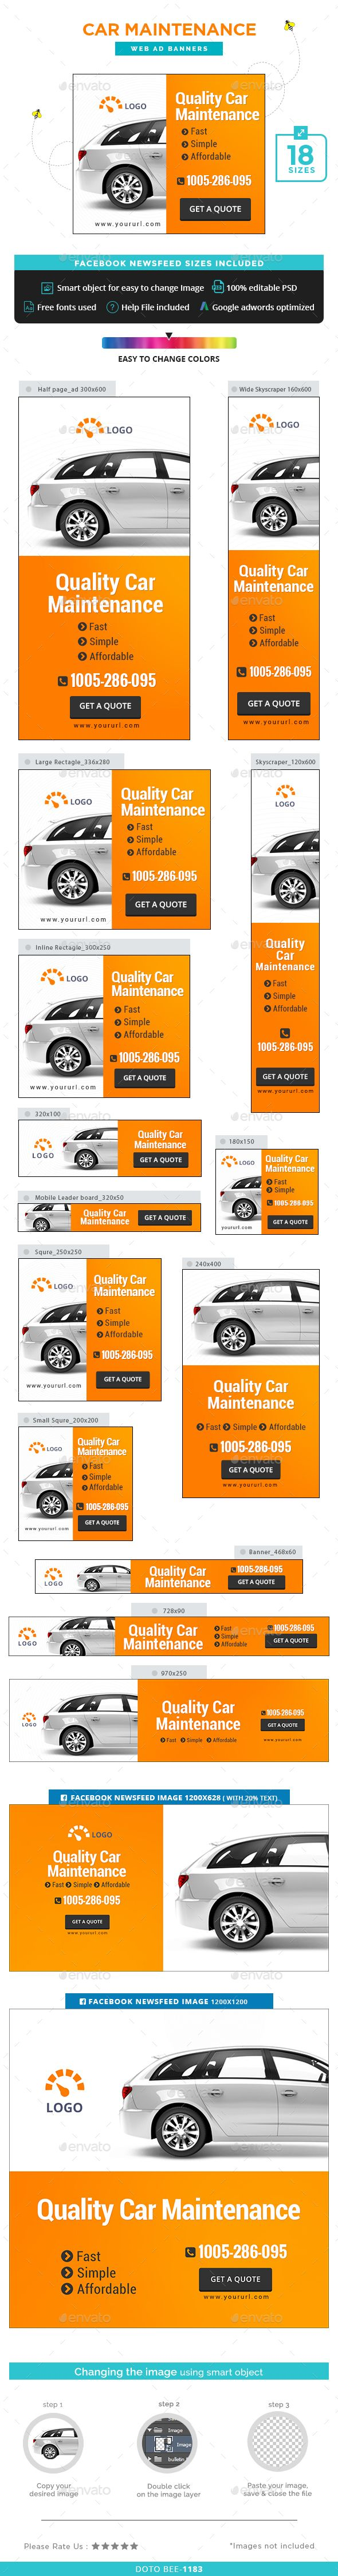 Car Maintenance Web Banners Template PSD. Download here: http://graphicriver.net/item/car-maintenance-banners/15233458?ref=ksioks